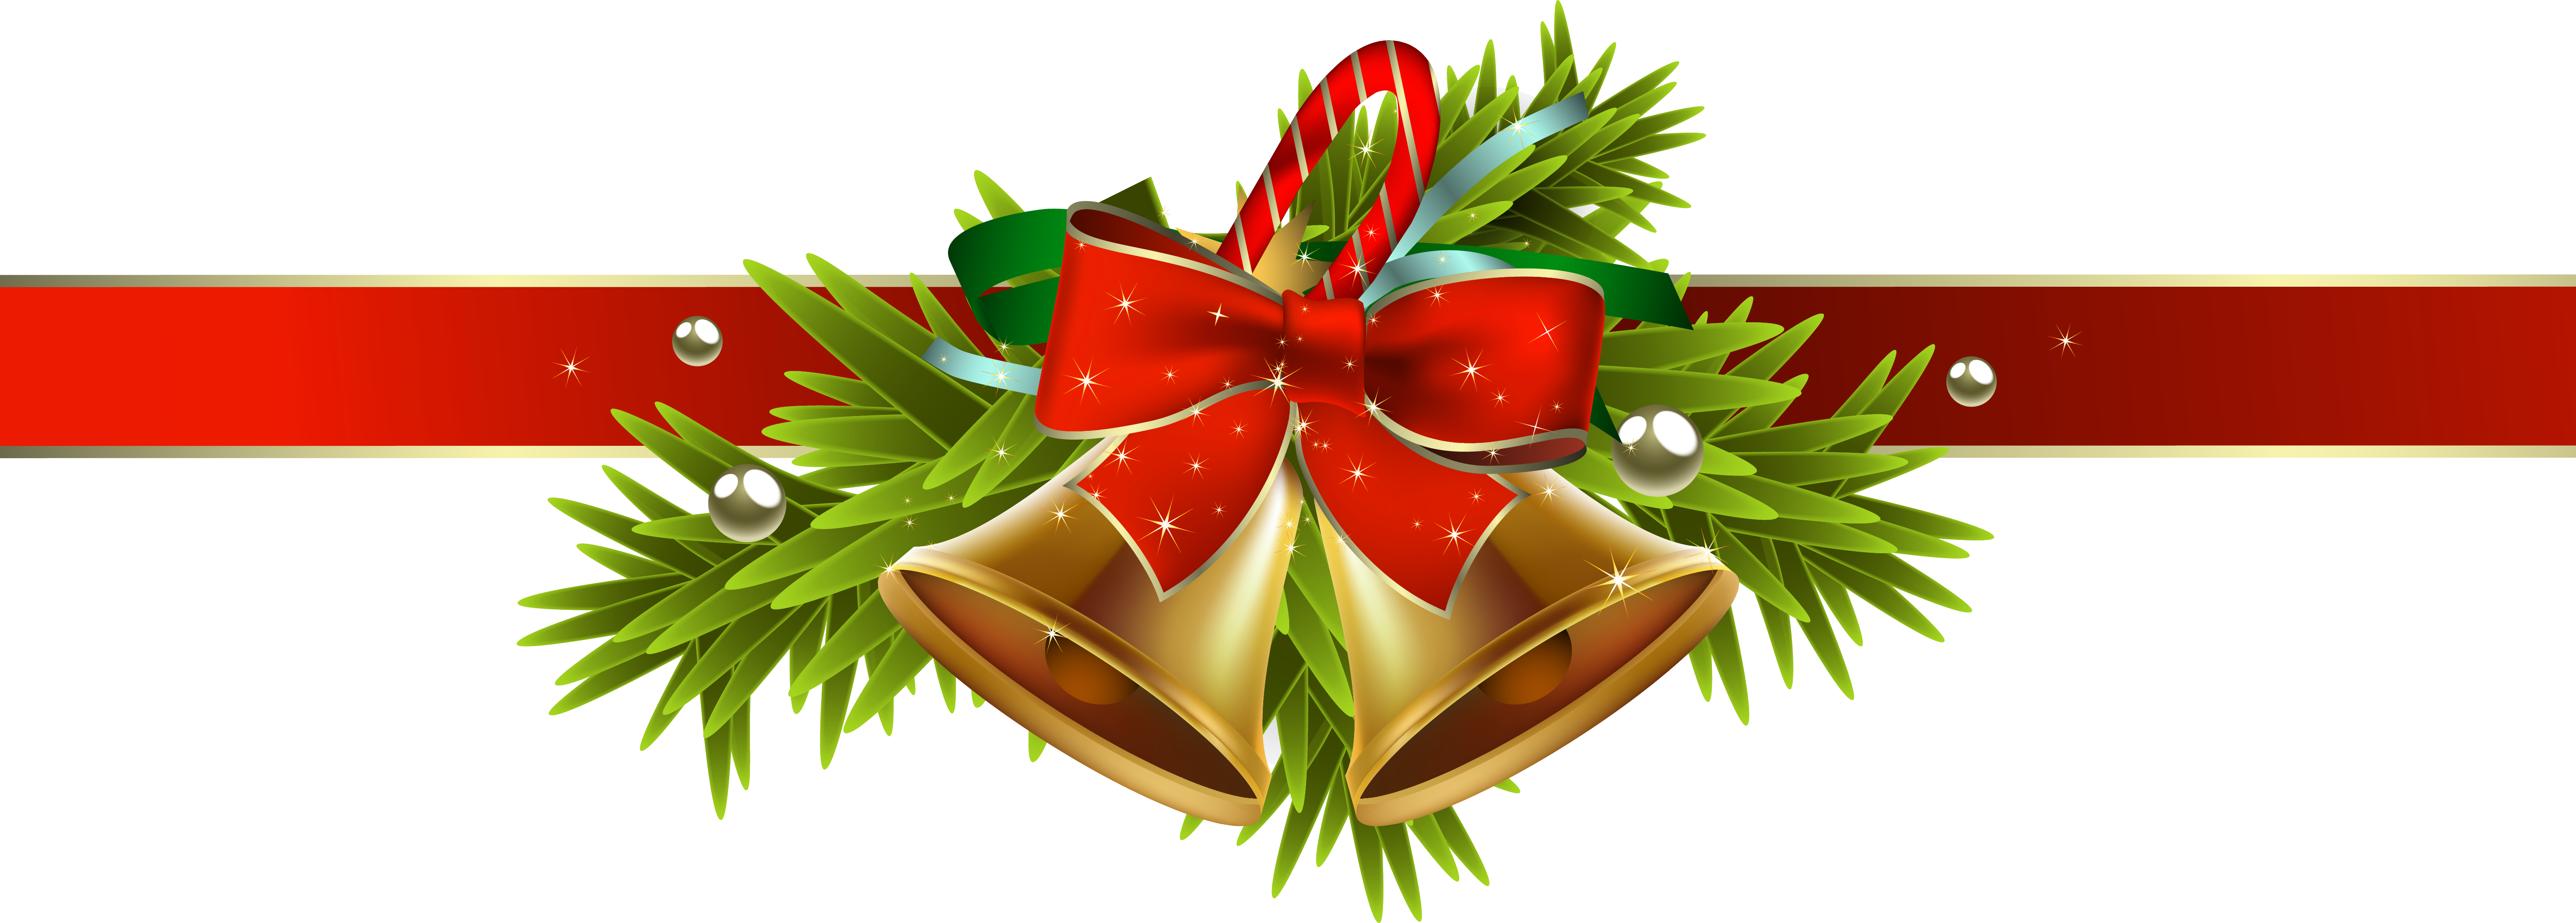 Png christmas images.  collection of free